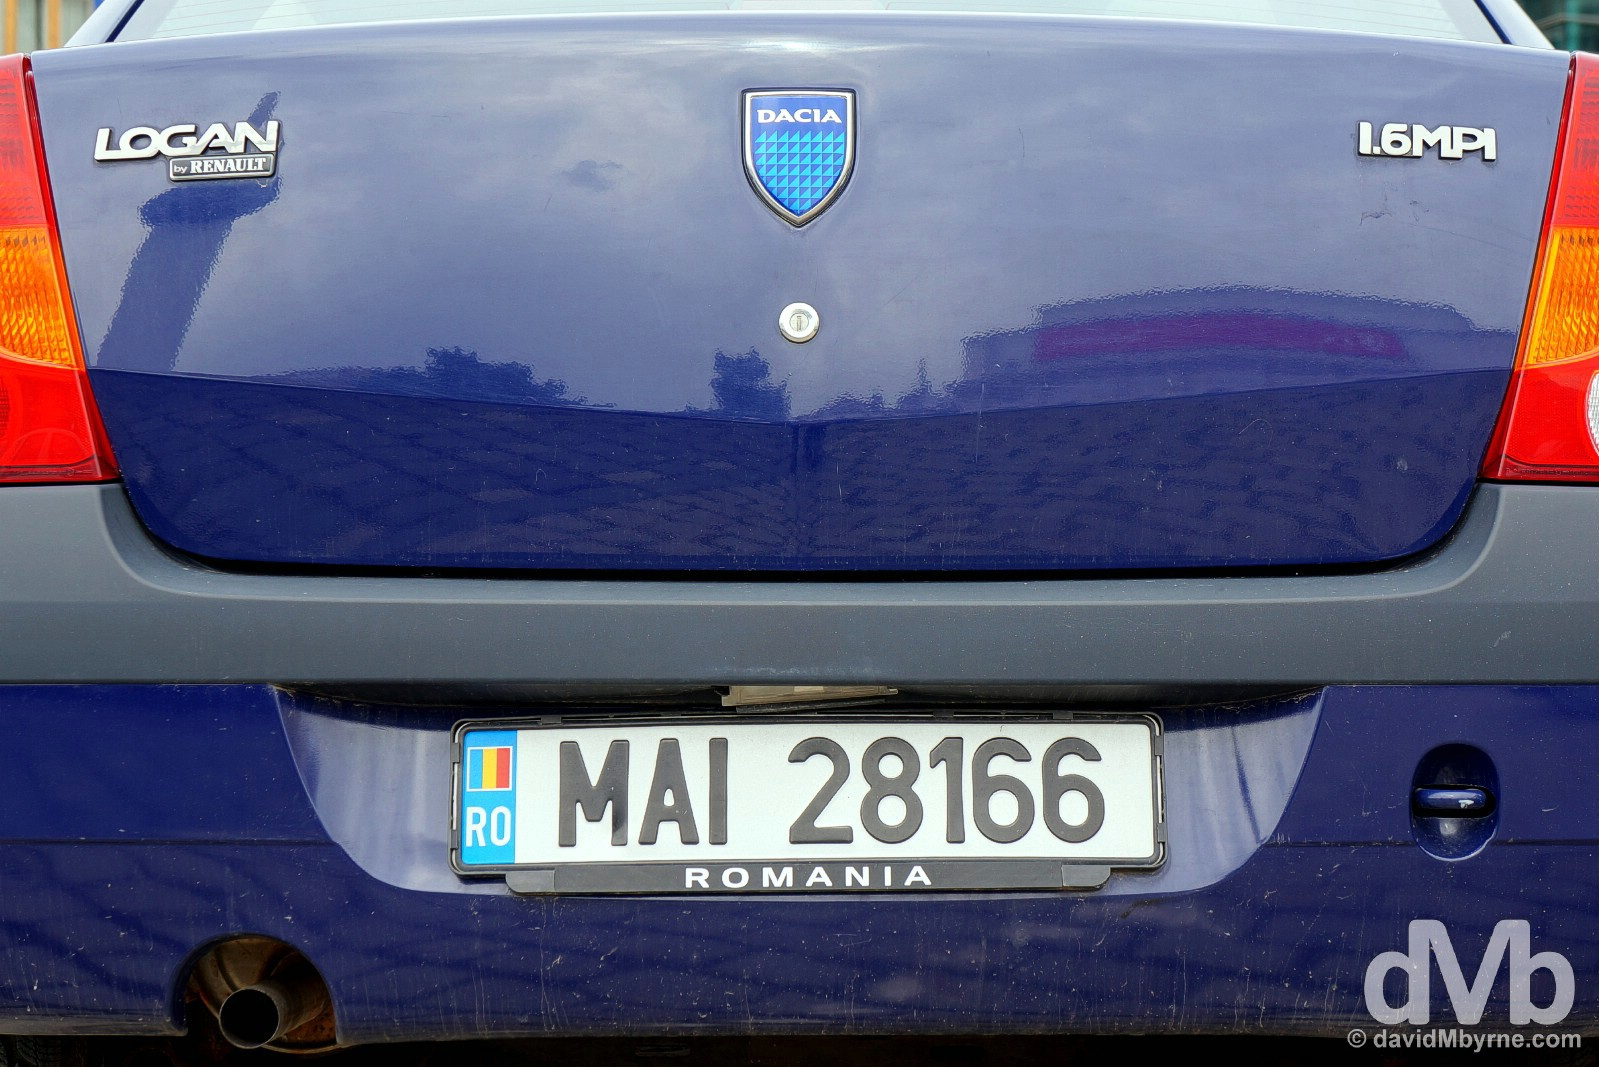 A Dacia on the streets of central Bucharest, Romania. April 1, 2015.